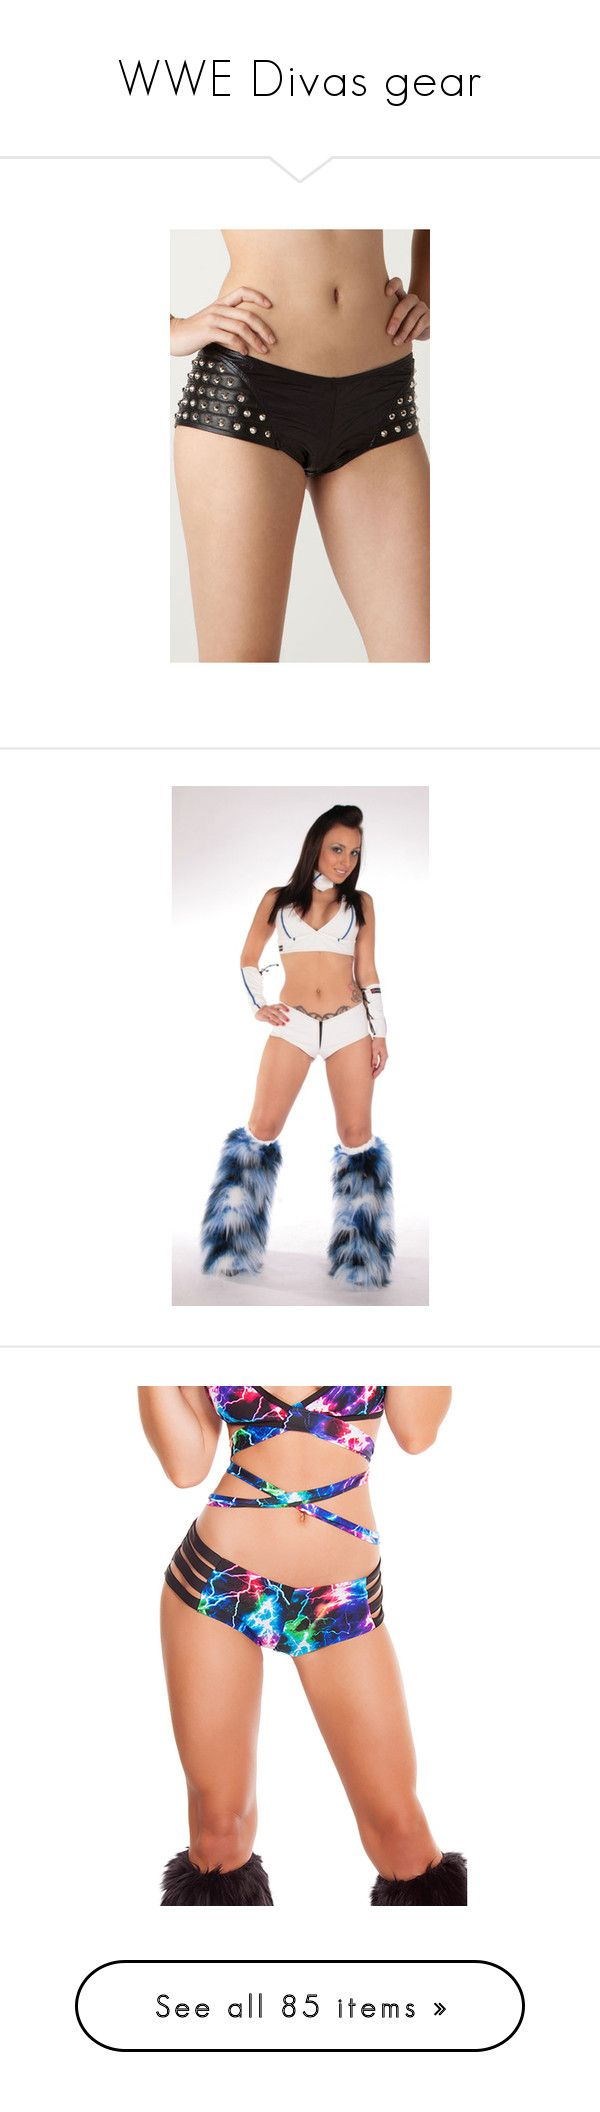 """""""WWE Divas gear"""" by em15905 ❤ liked on Polyvore featuring shorts, bottoms, pants, wrestling, low rise boy shorts, boy shorts, low rise boyshorts, studded leather shorts, low rise shorts and attire"""